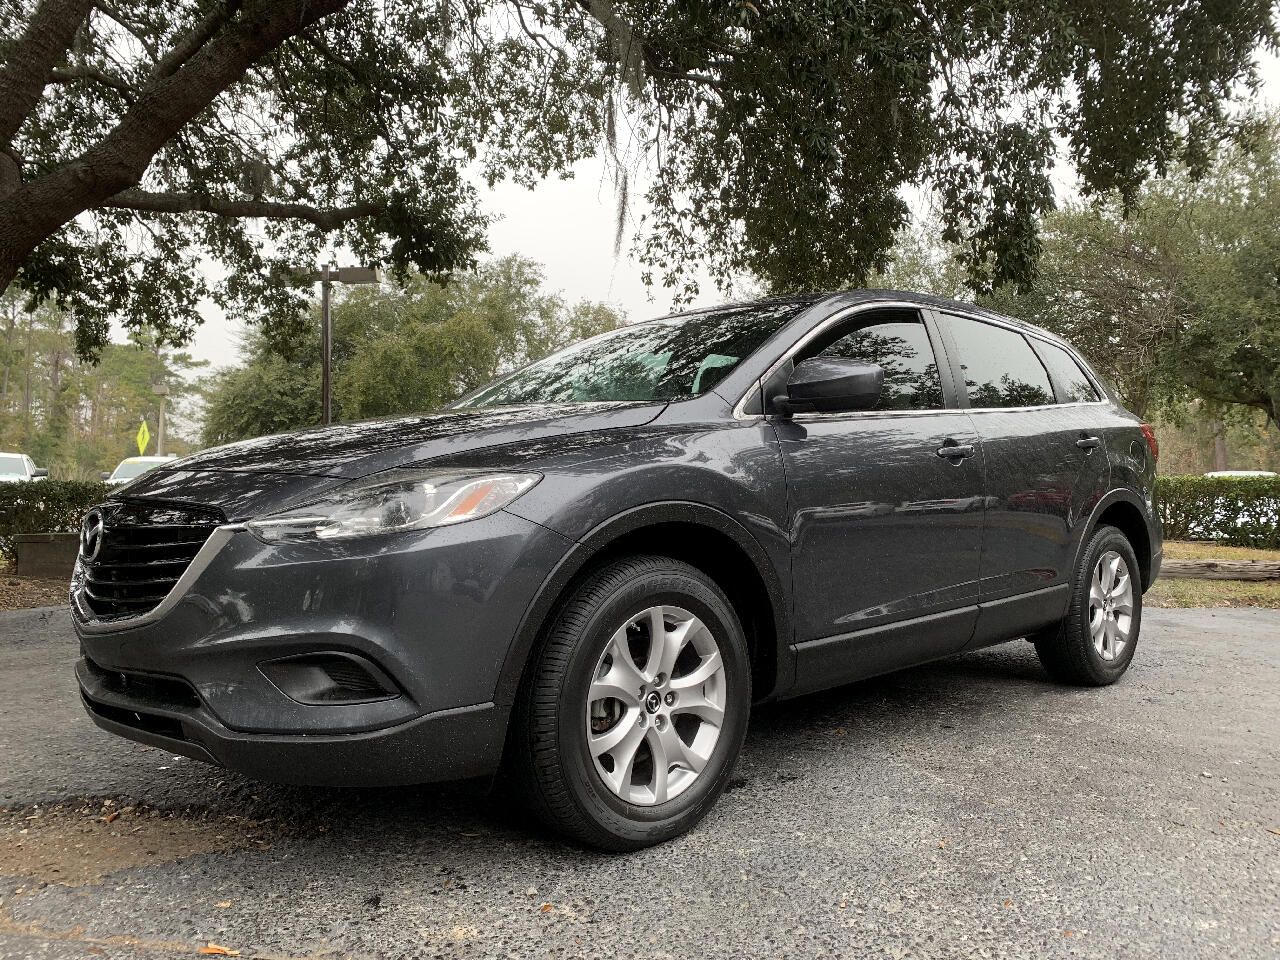 2015 Mazda CX-9 FWD Sport With 3rd Row Seat